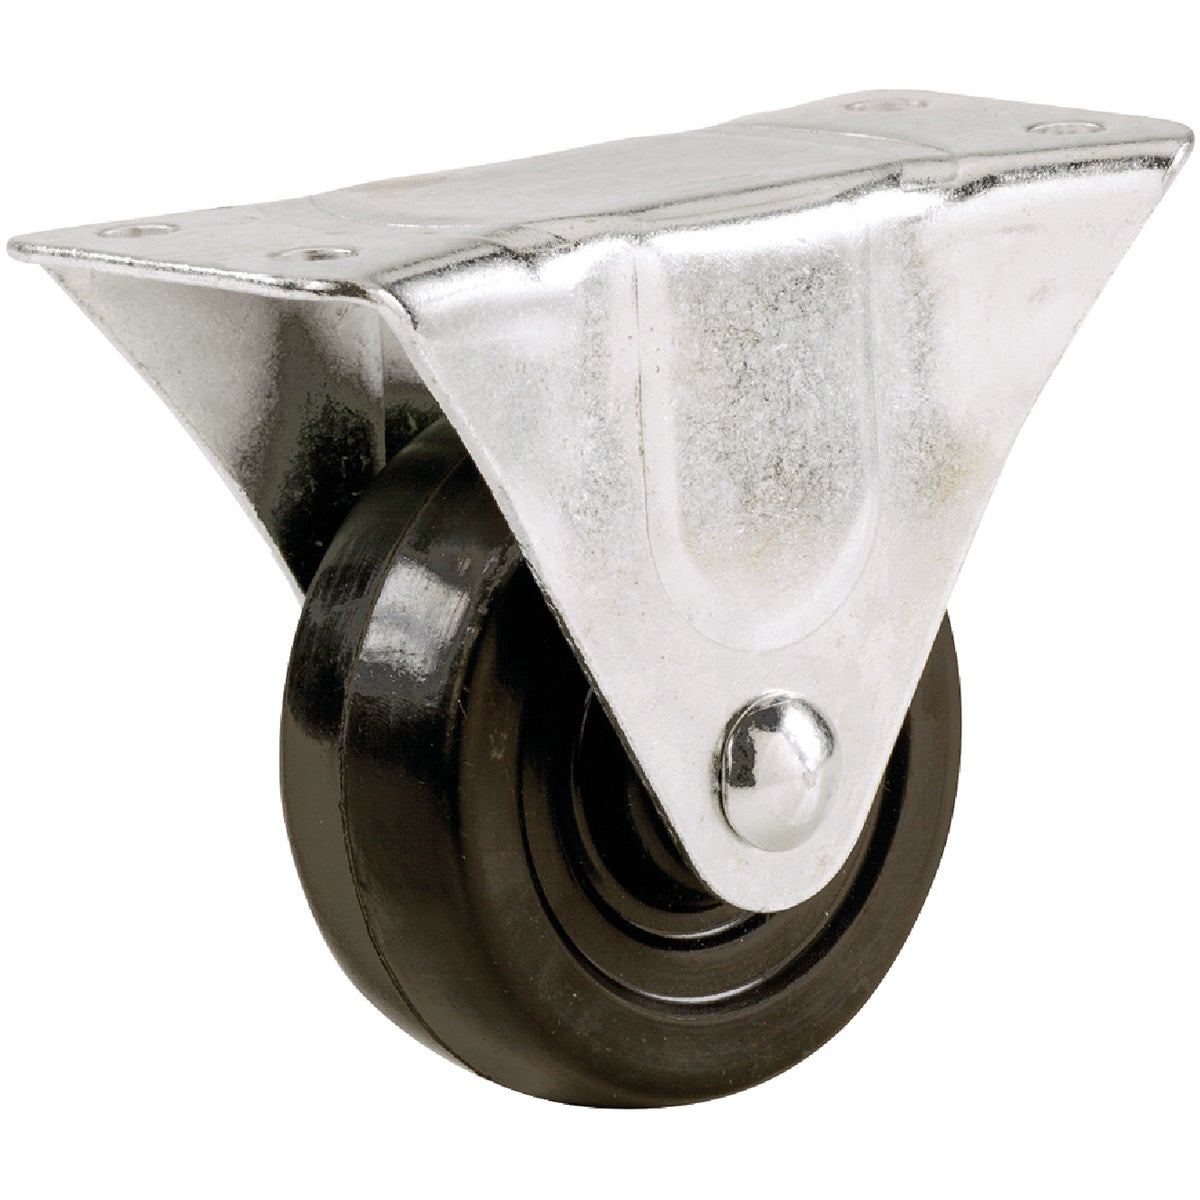 "3"" RUBBER RIGID CASTER - 9483 by Shepherd Hardware"